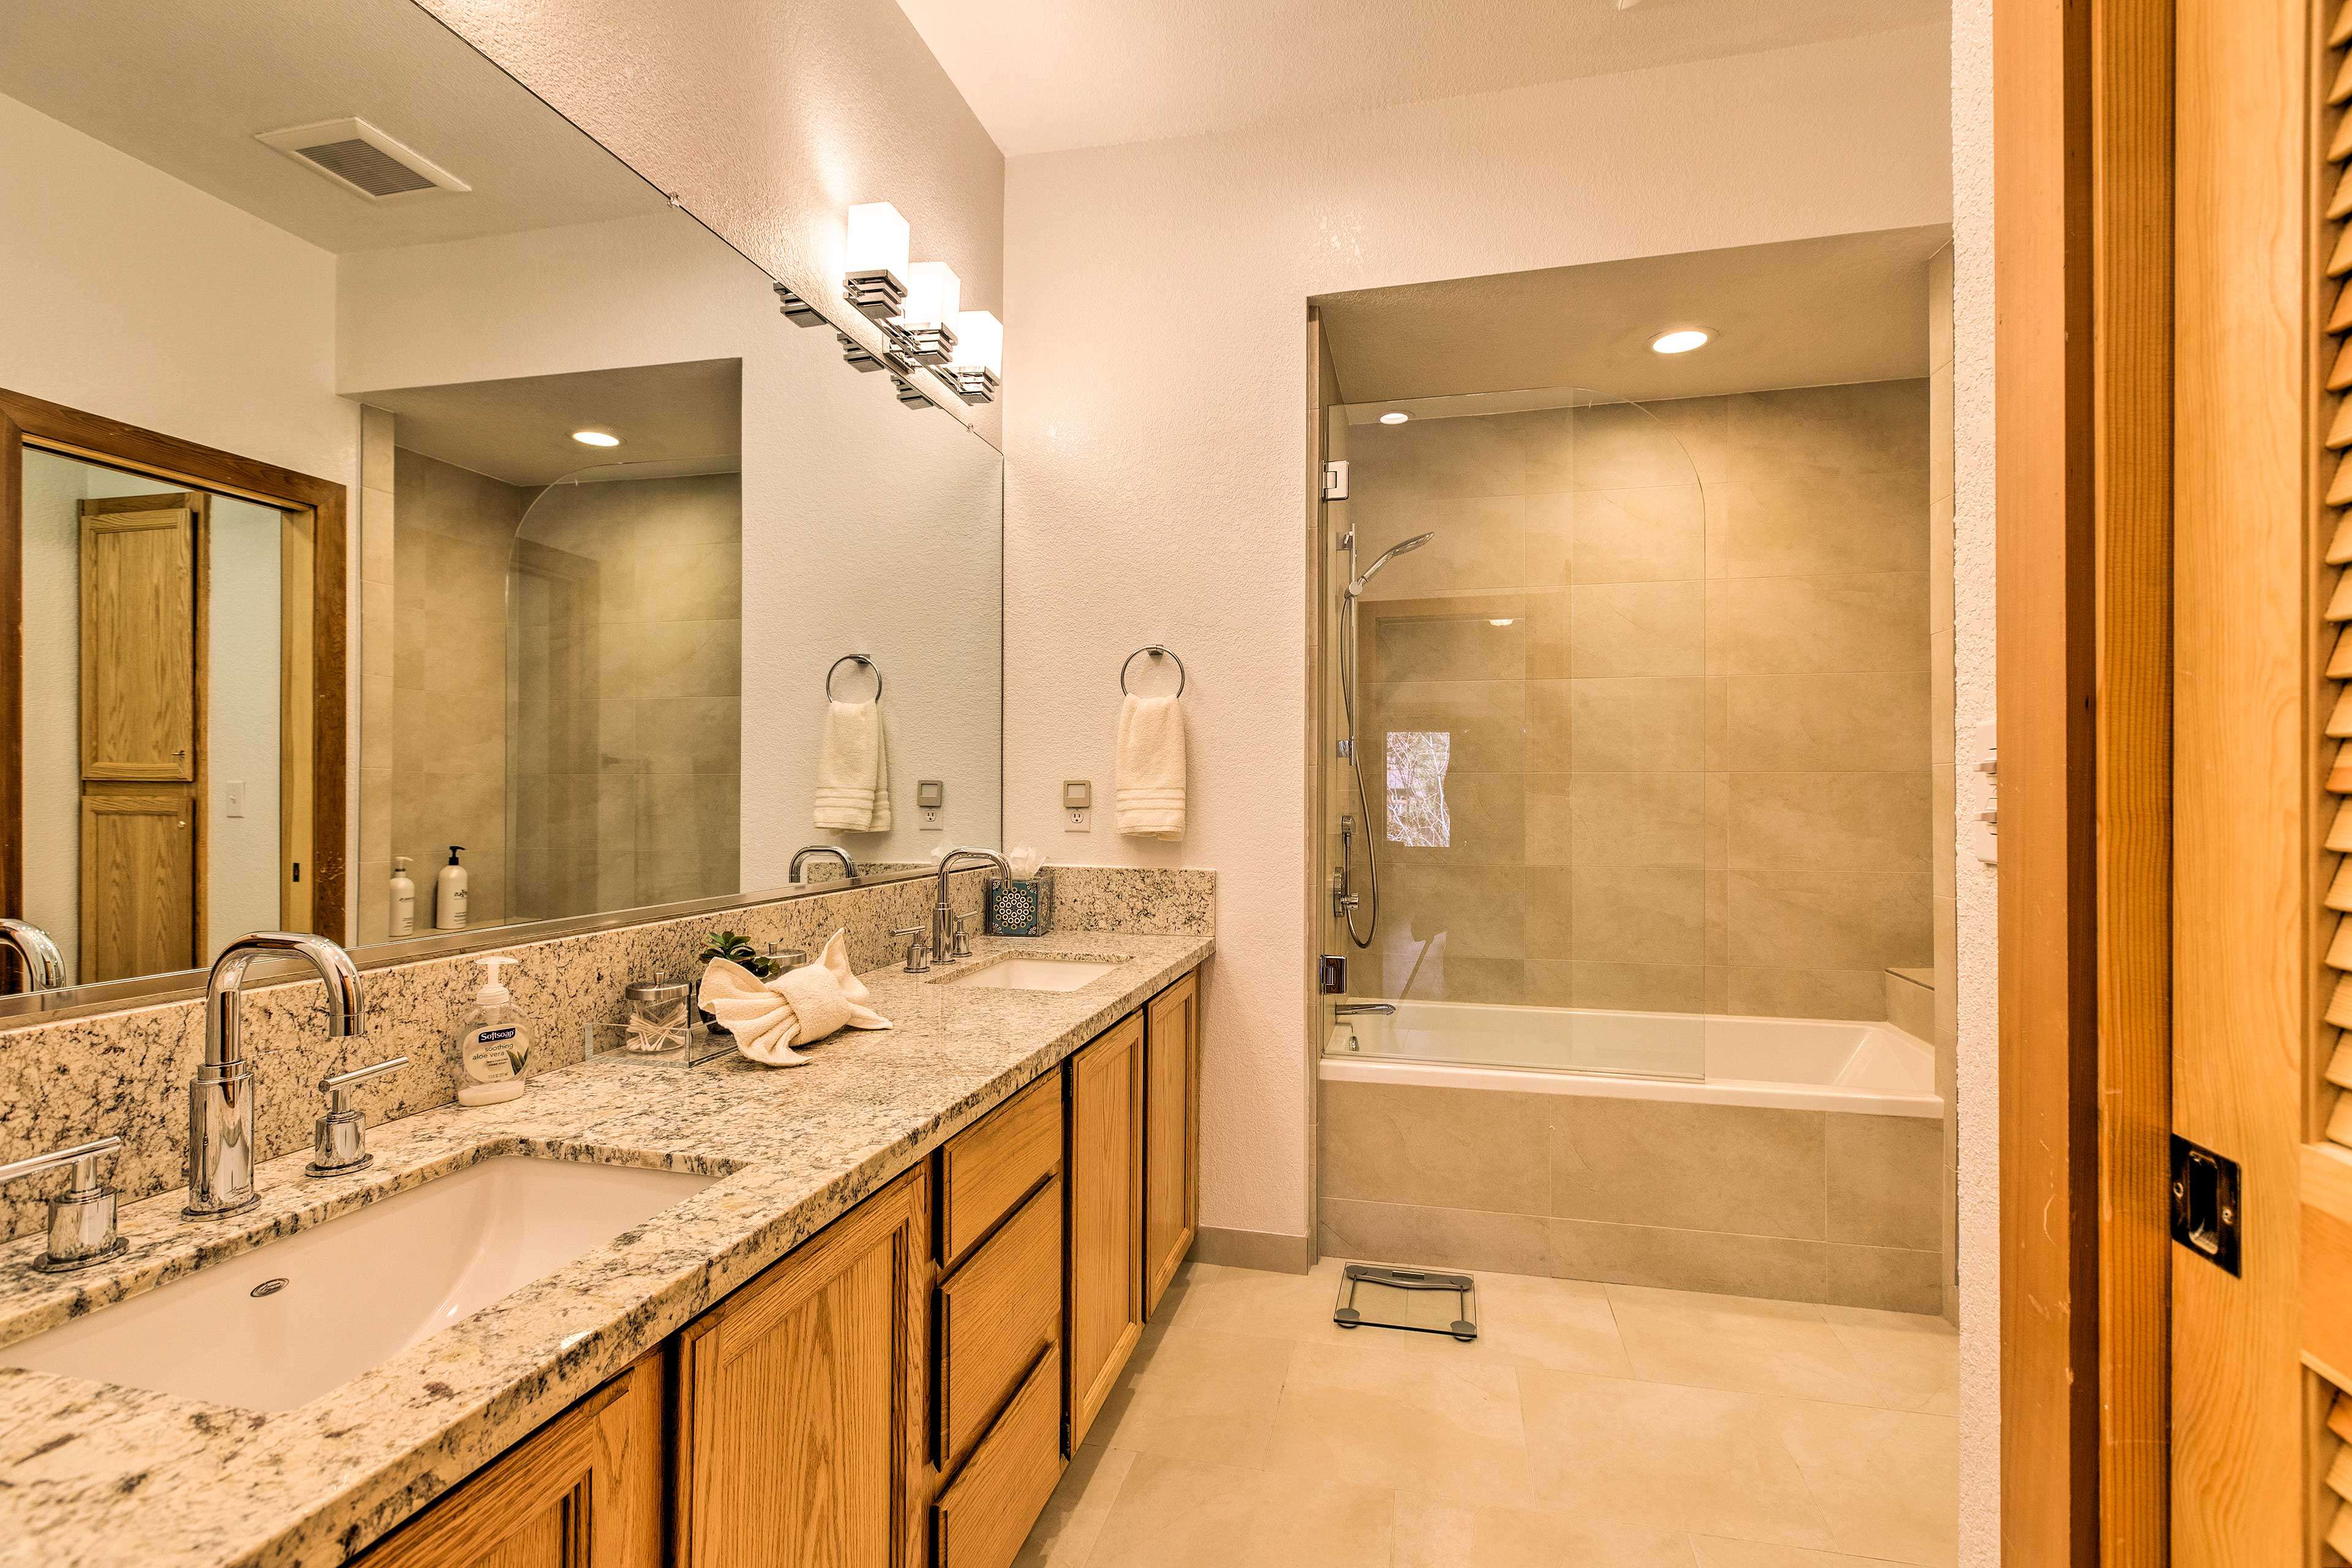 The en-suite master bathroom provides a double vanity and a shower/tub combo.